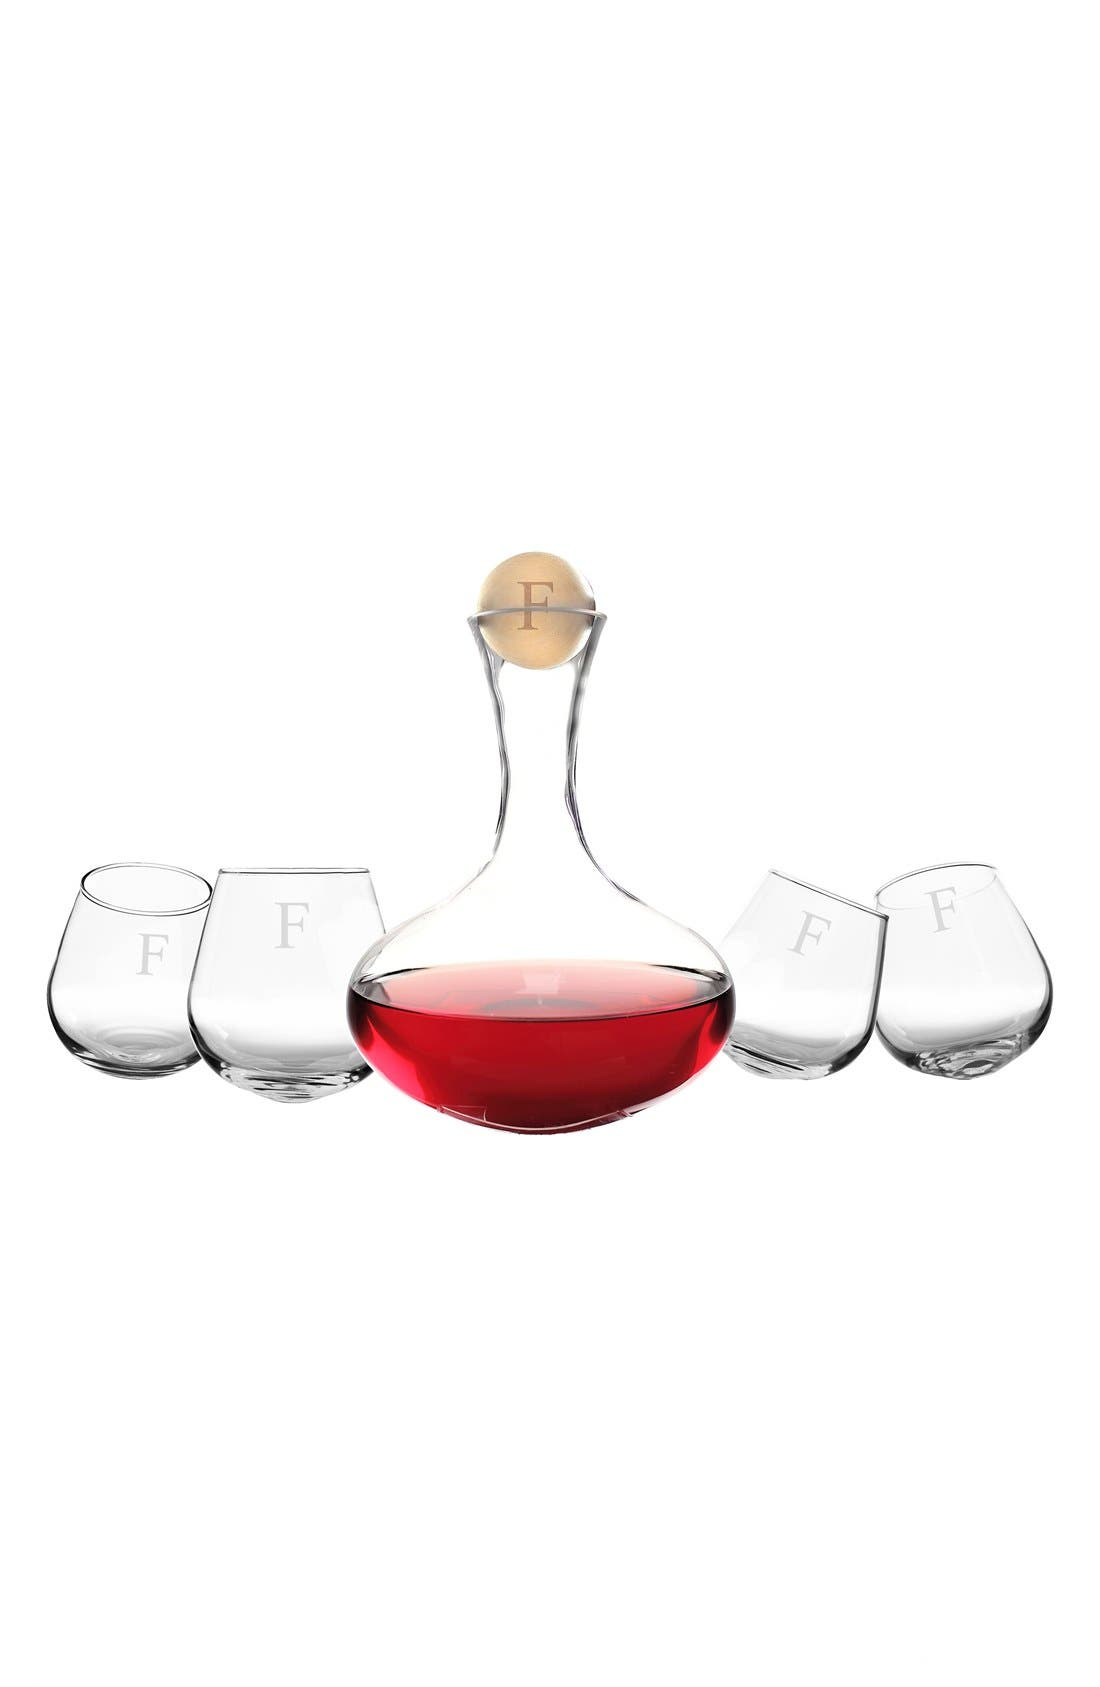 Main Image - Cathy's Concepts 'Tipsy' Monogram Wine Decanter & Stemless Glasses (Set of 5)